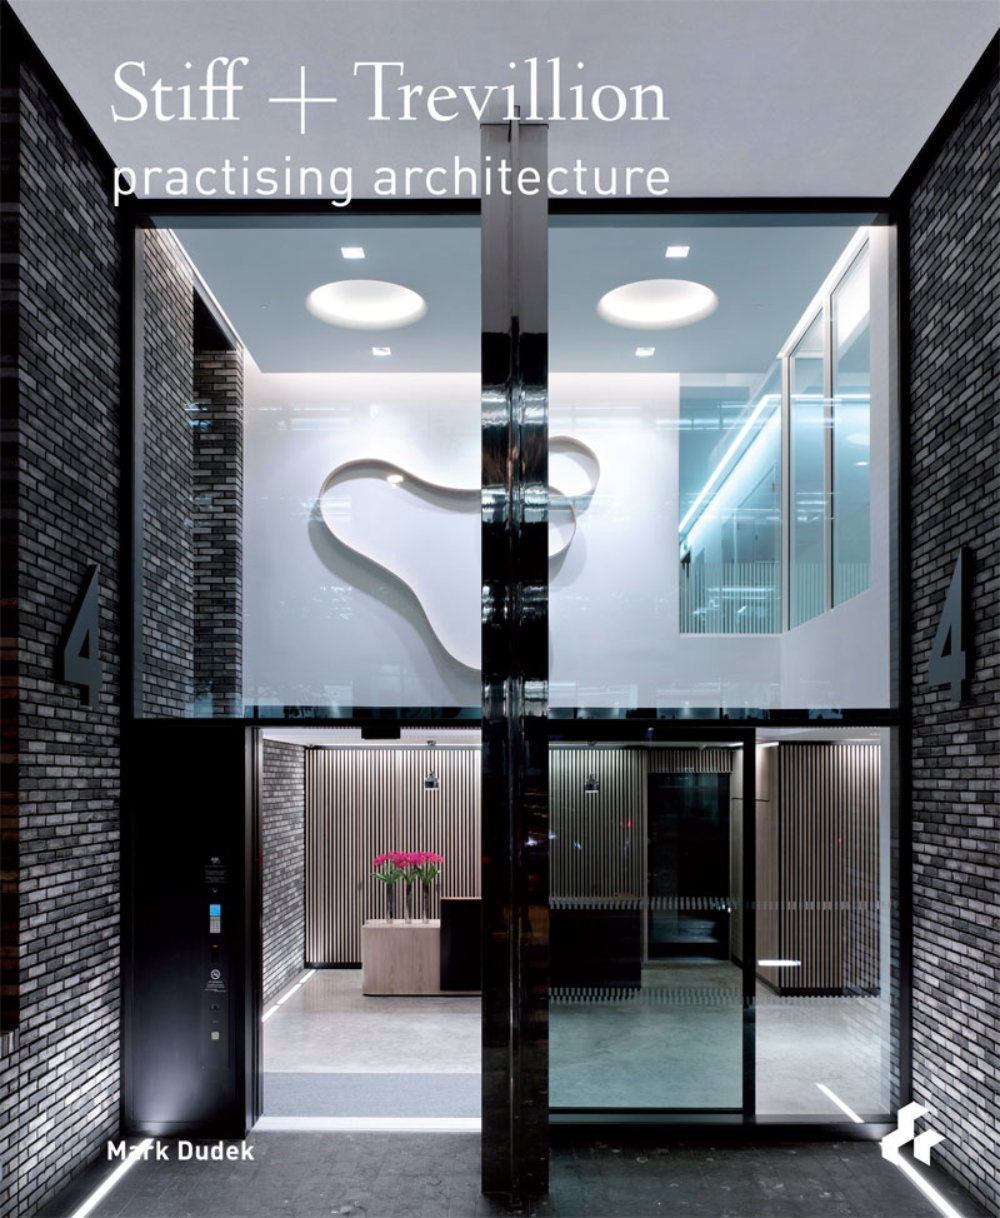 practising architecture - An exhibtion, NLA, London, 12 February - 17 March 2014